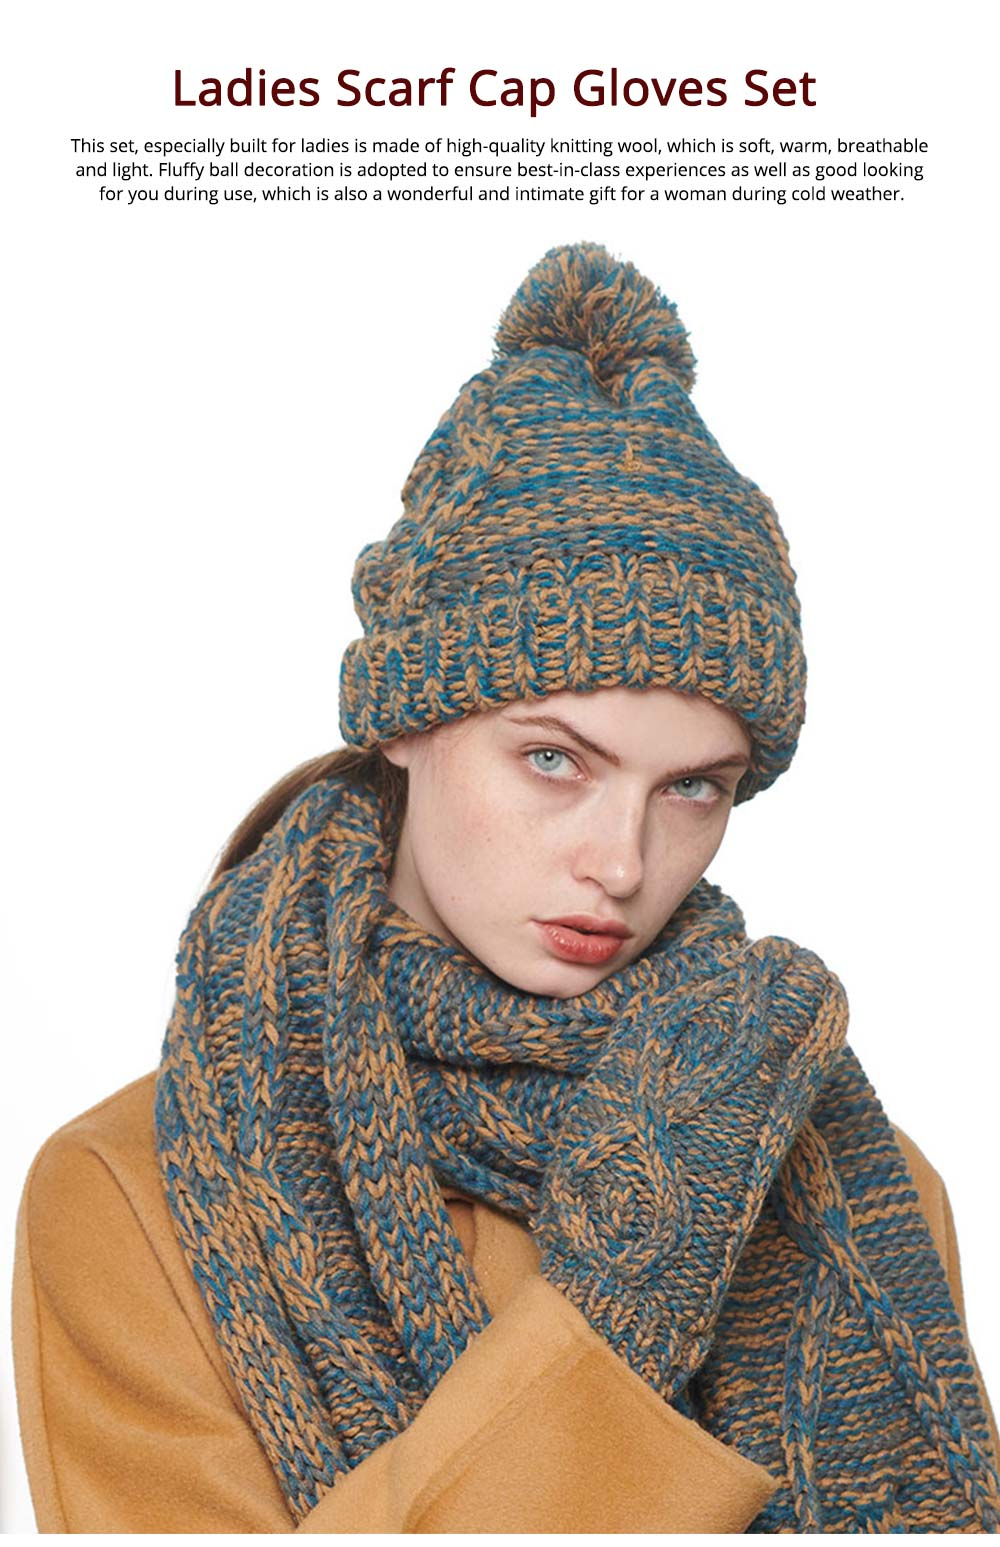 Winter Accessories for Ladies Colorful Knitted Scarf Hat Gloves Suit with Wool Ball Decoration Thicken Warm Autumn Winter 3 PCS Set  0